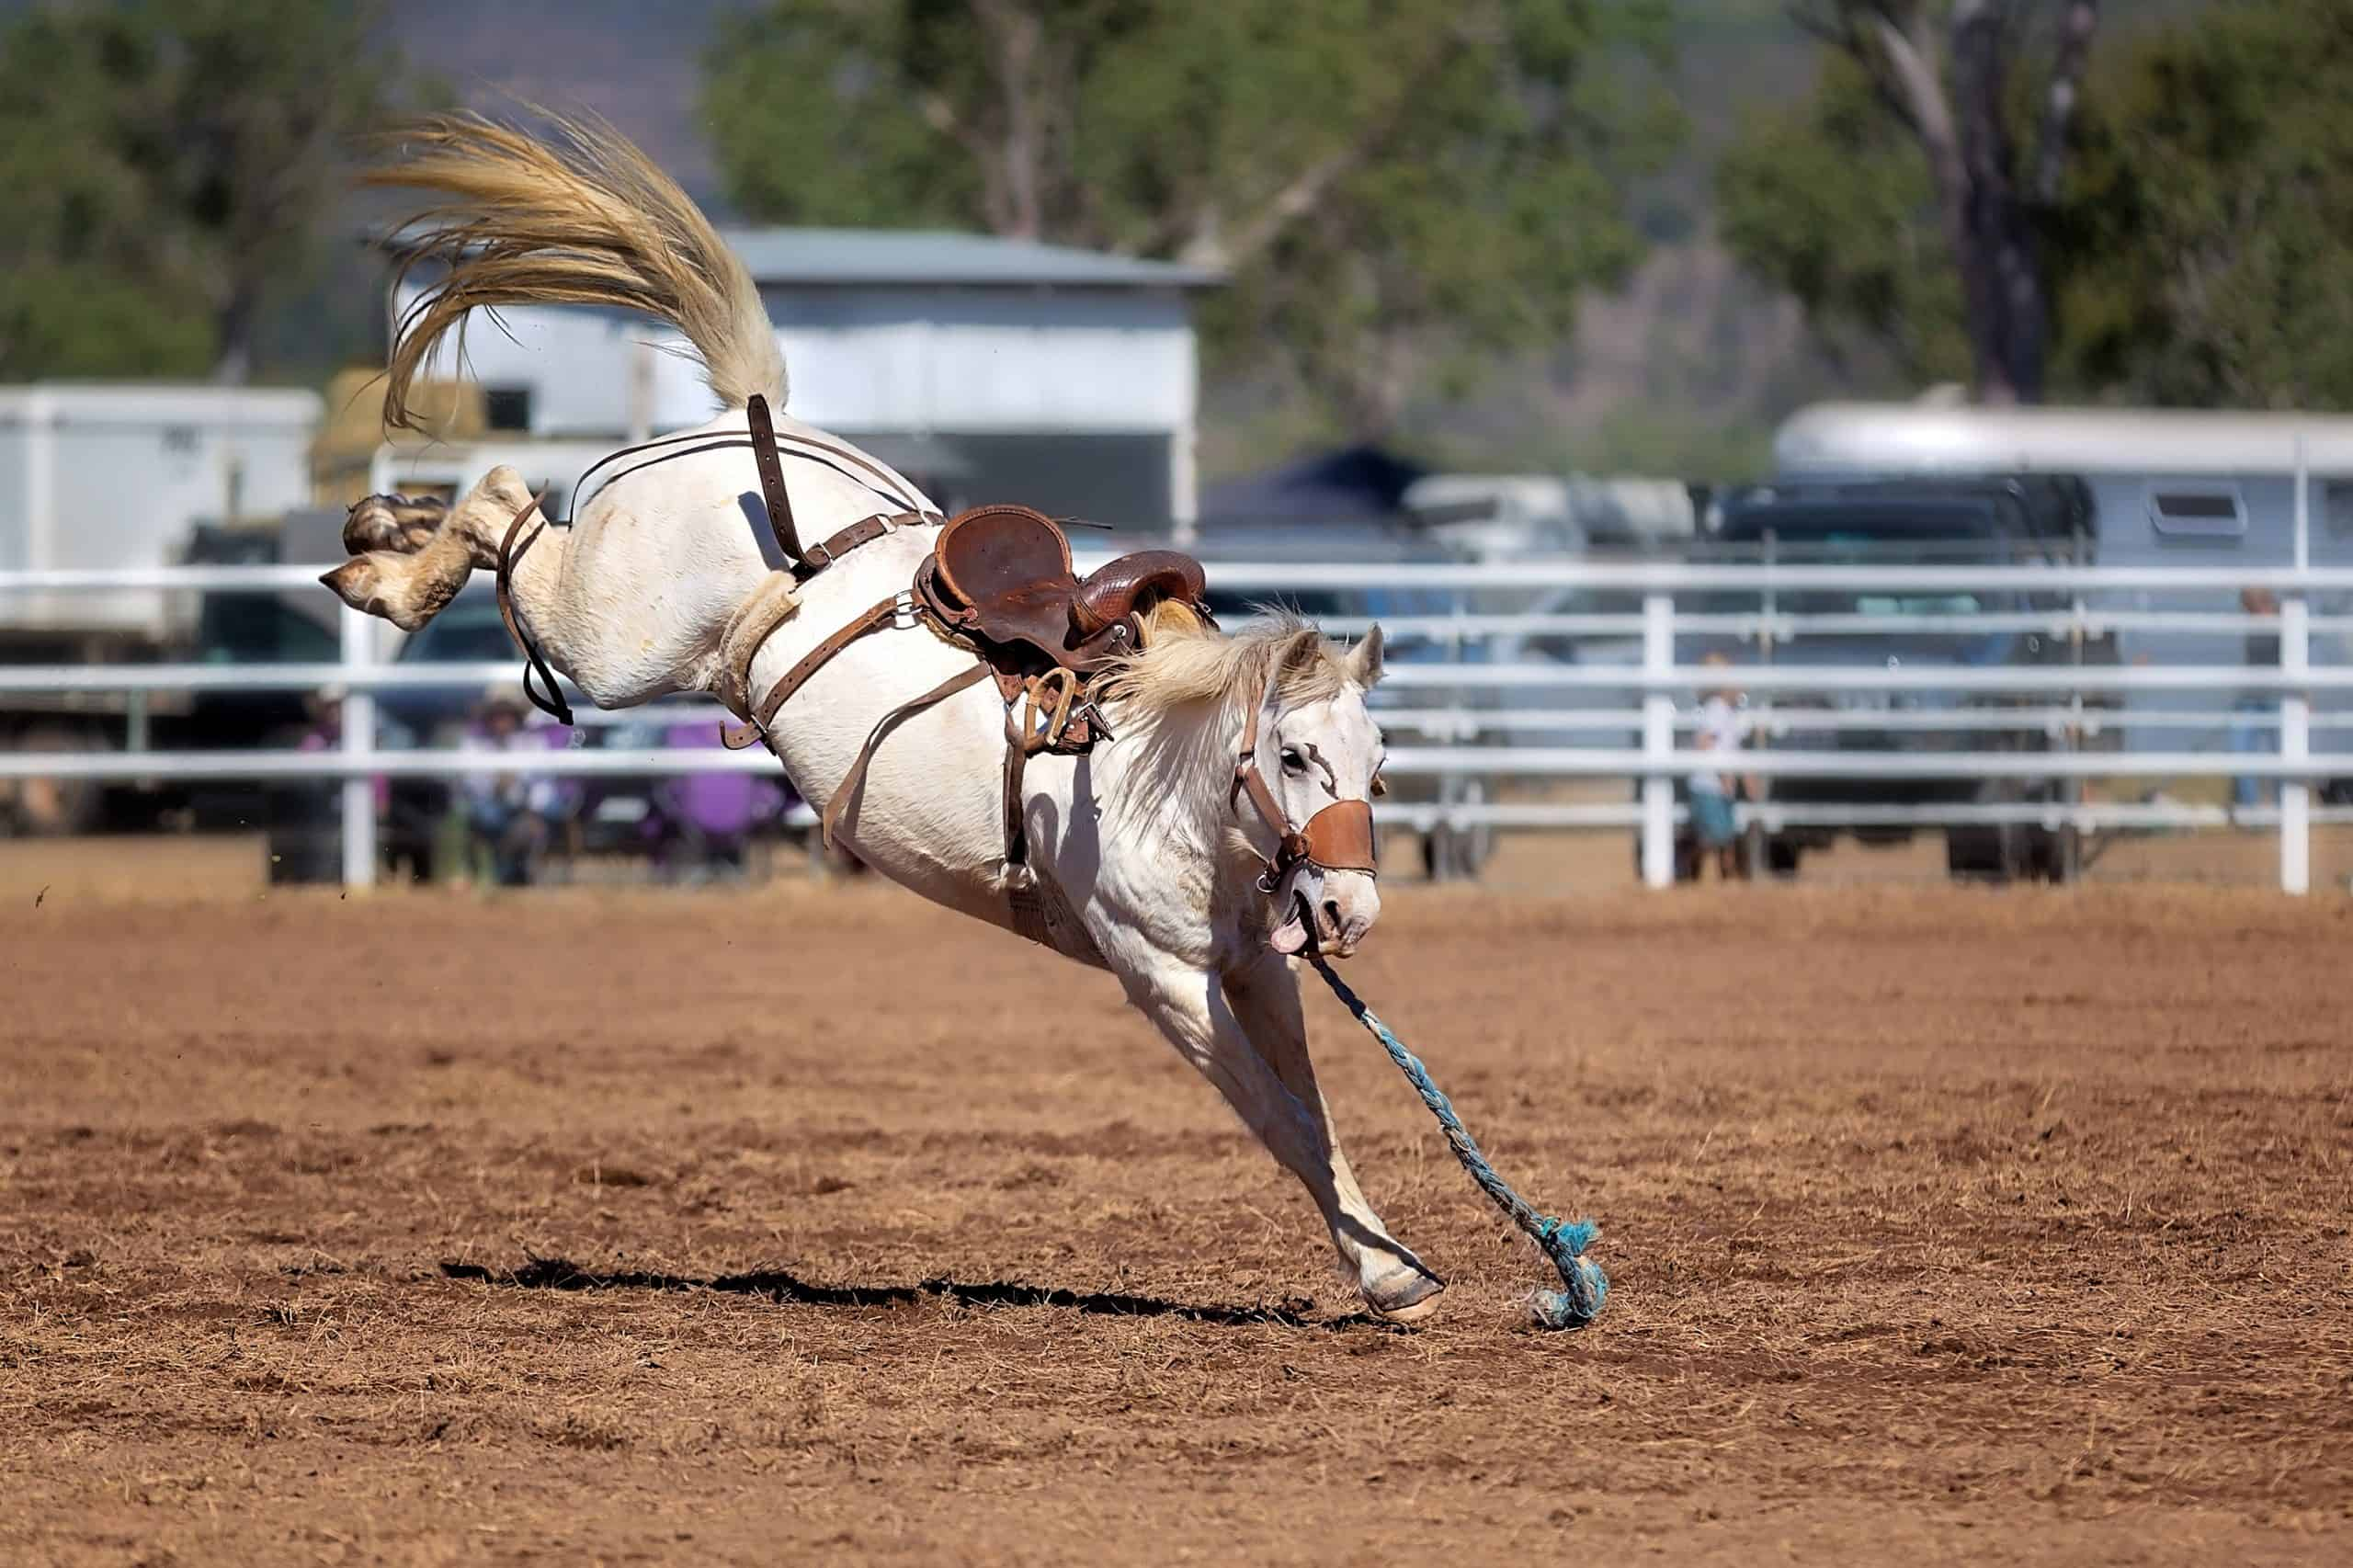 A white bronc with hooves in air after bucking off its cowboy rider competing at a country rodeo